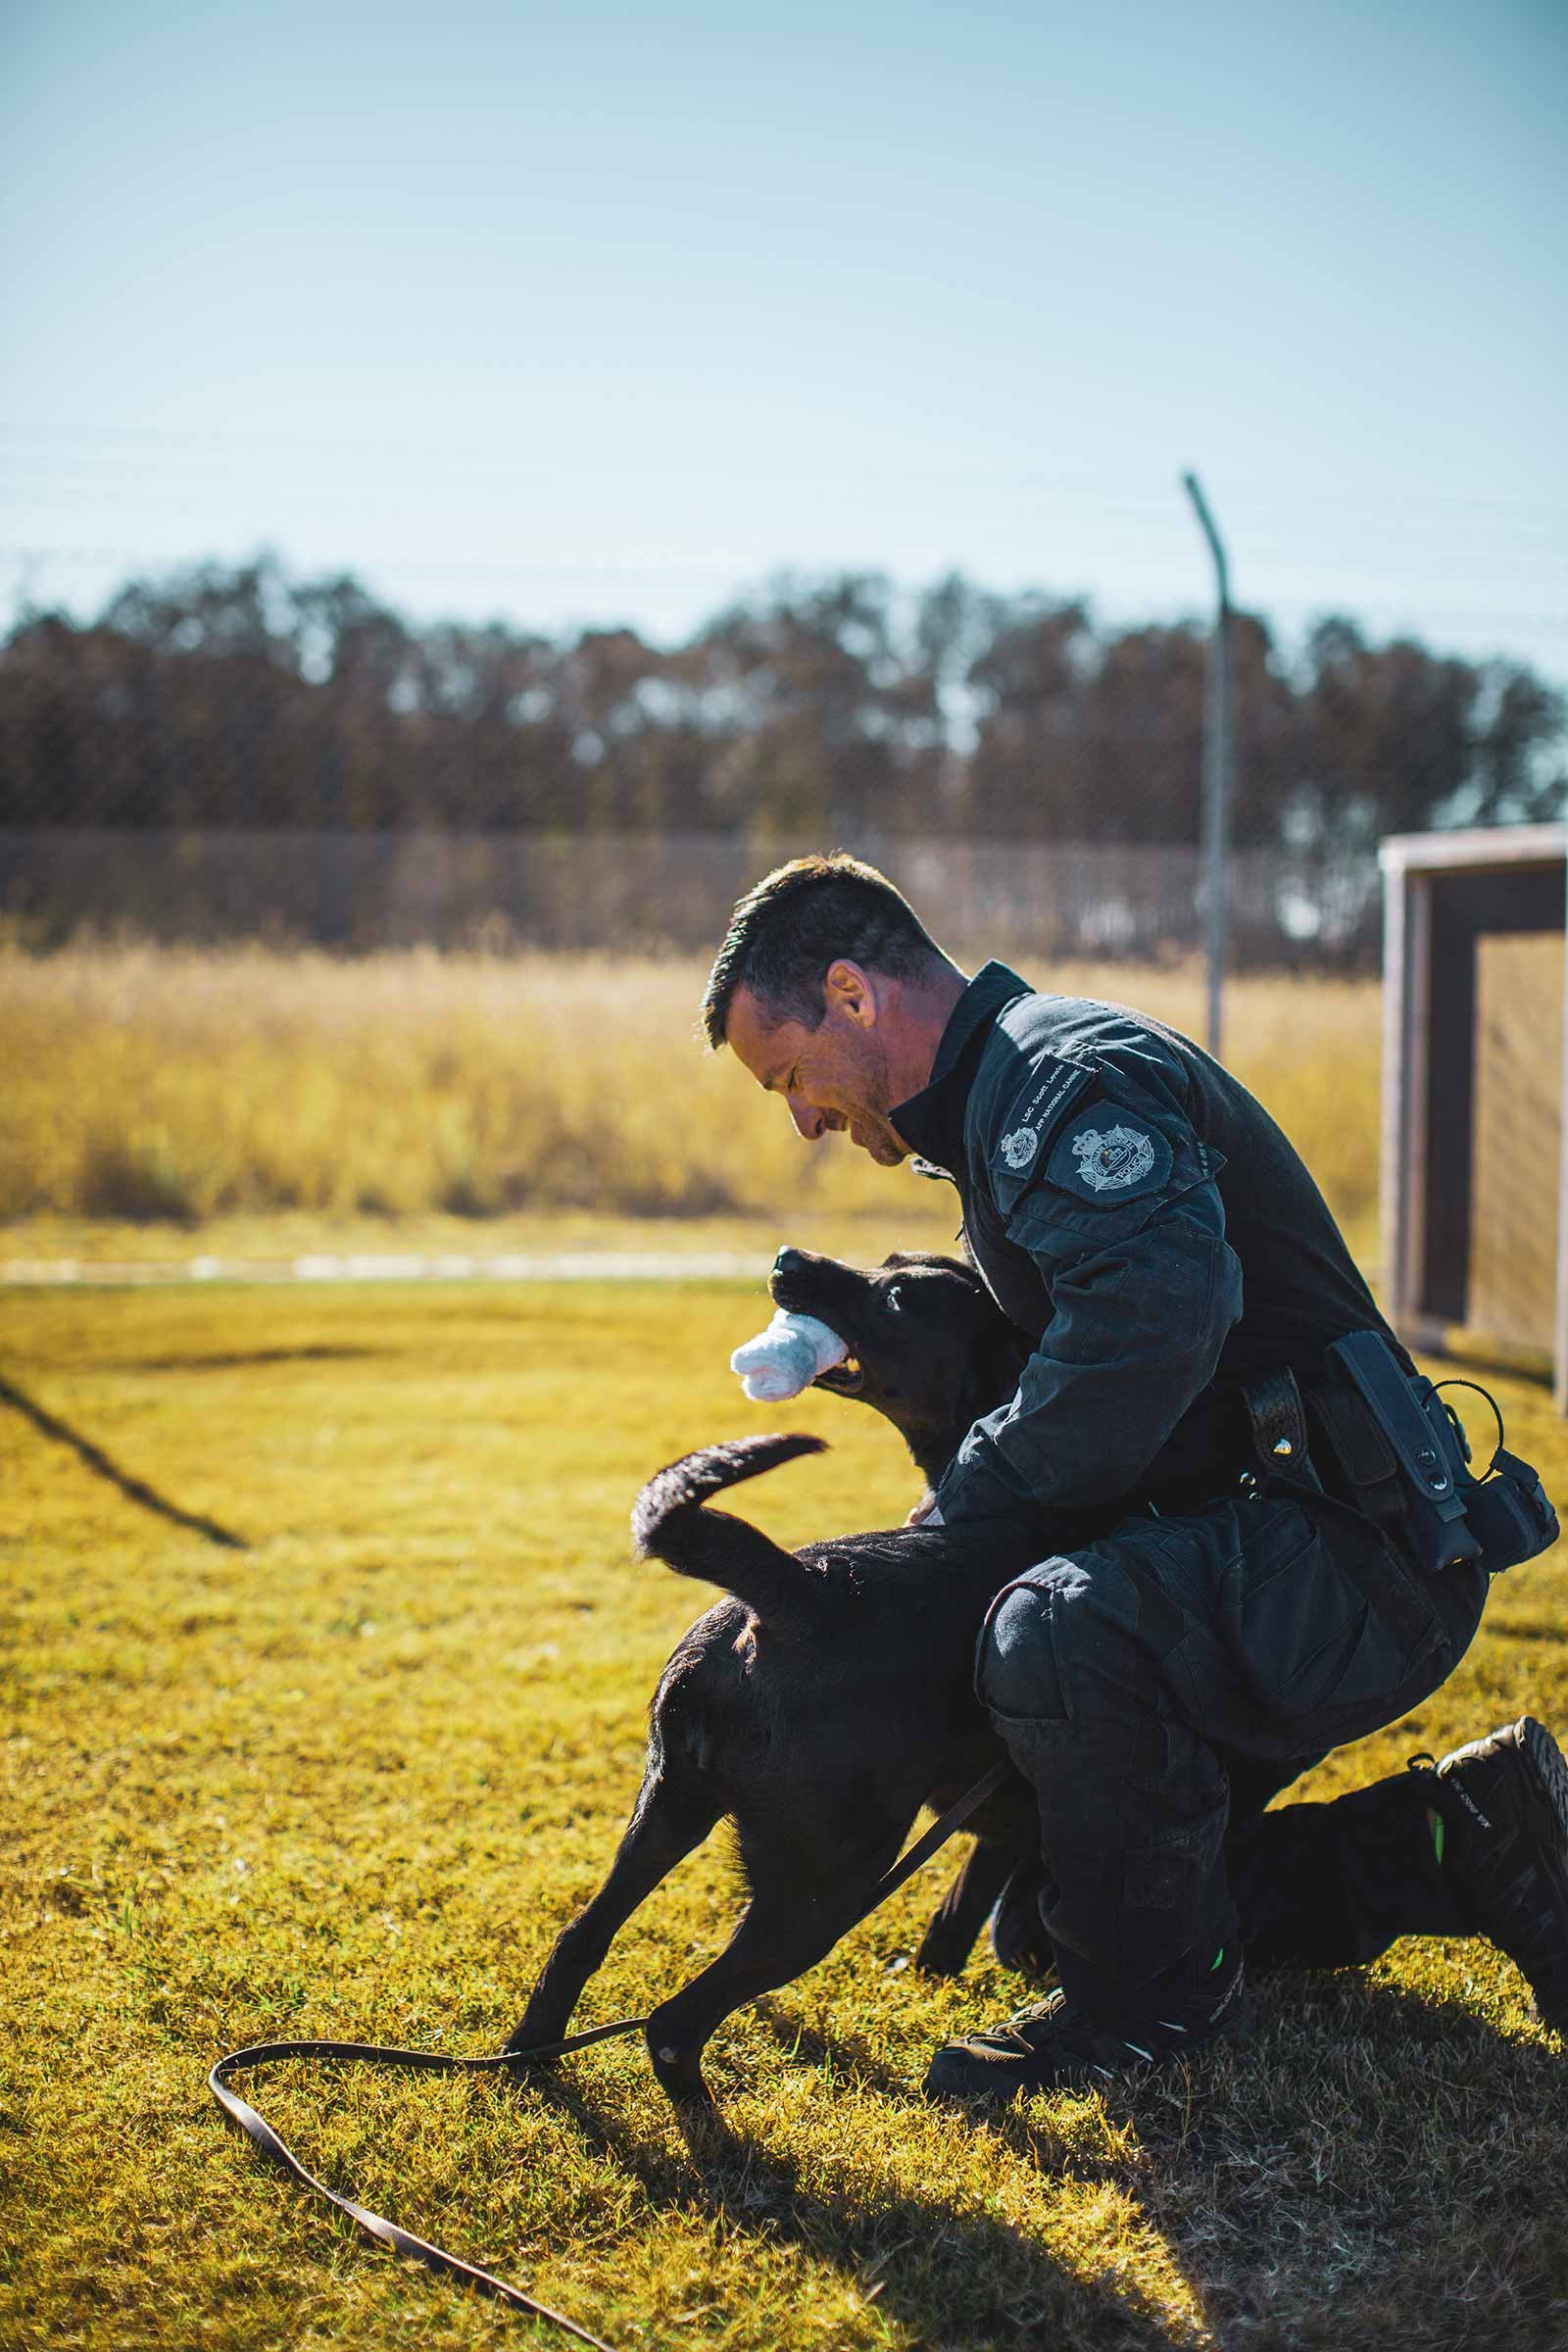 The AFP Canine Program training is based on repetition and reward